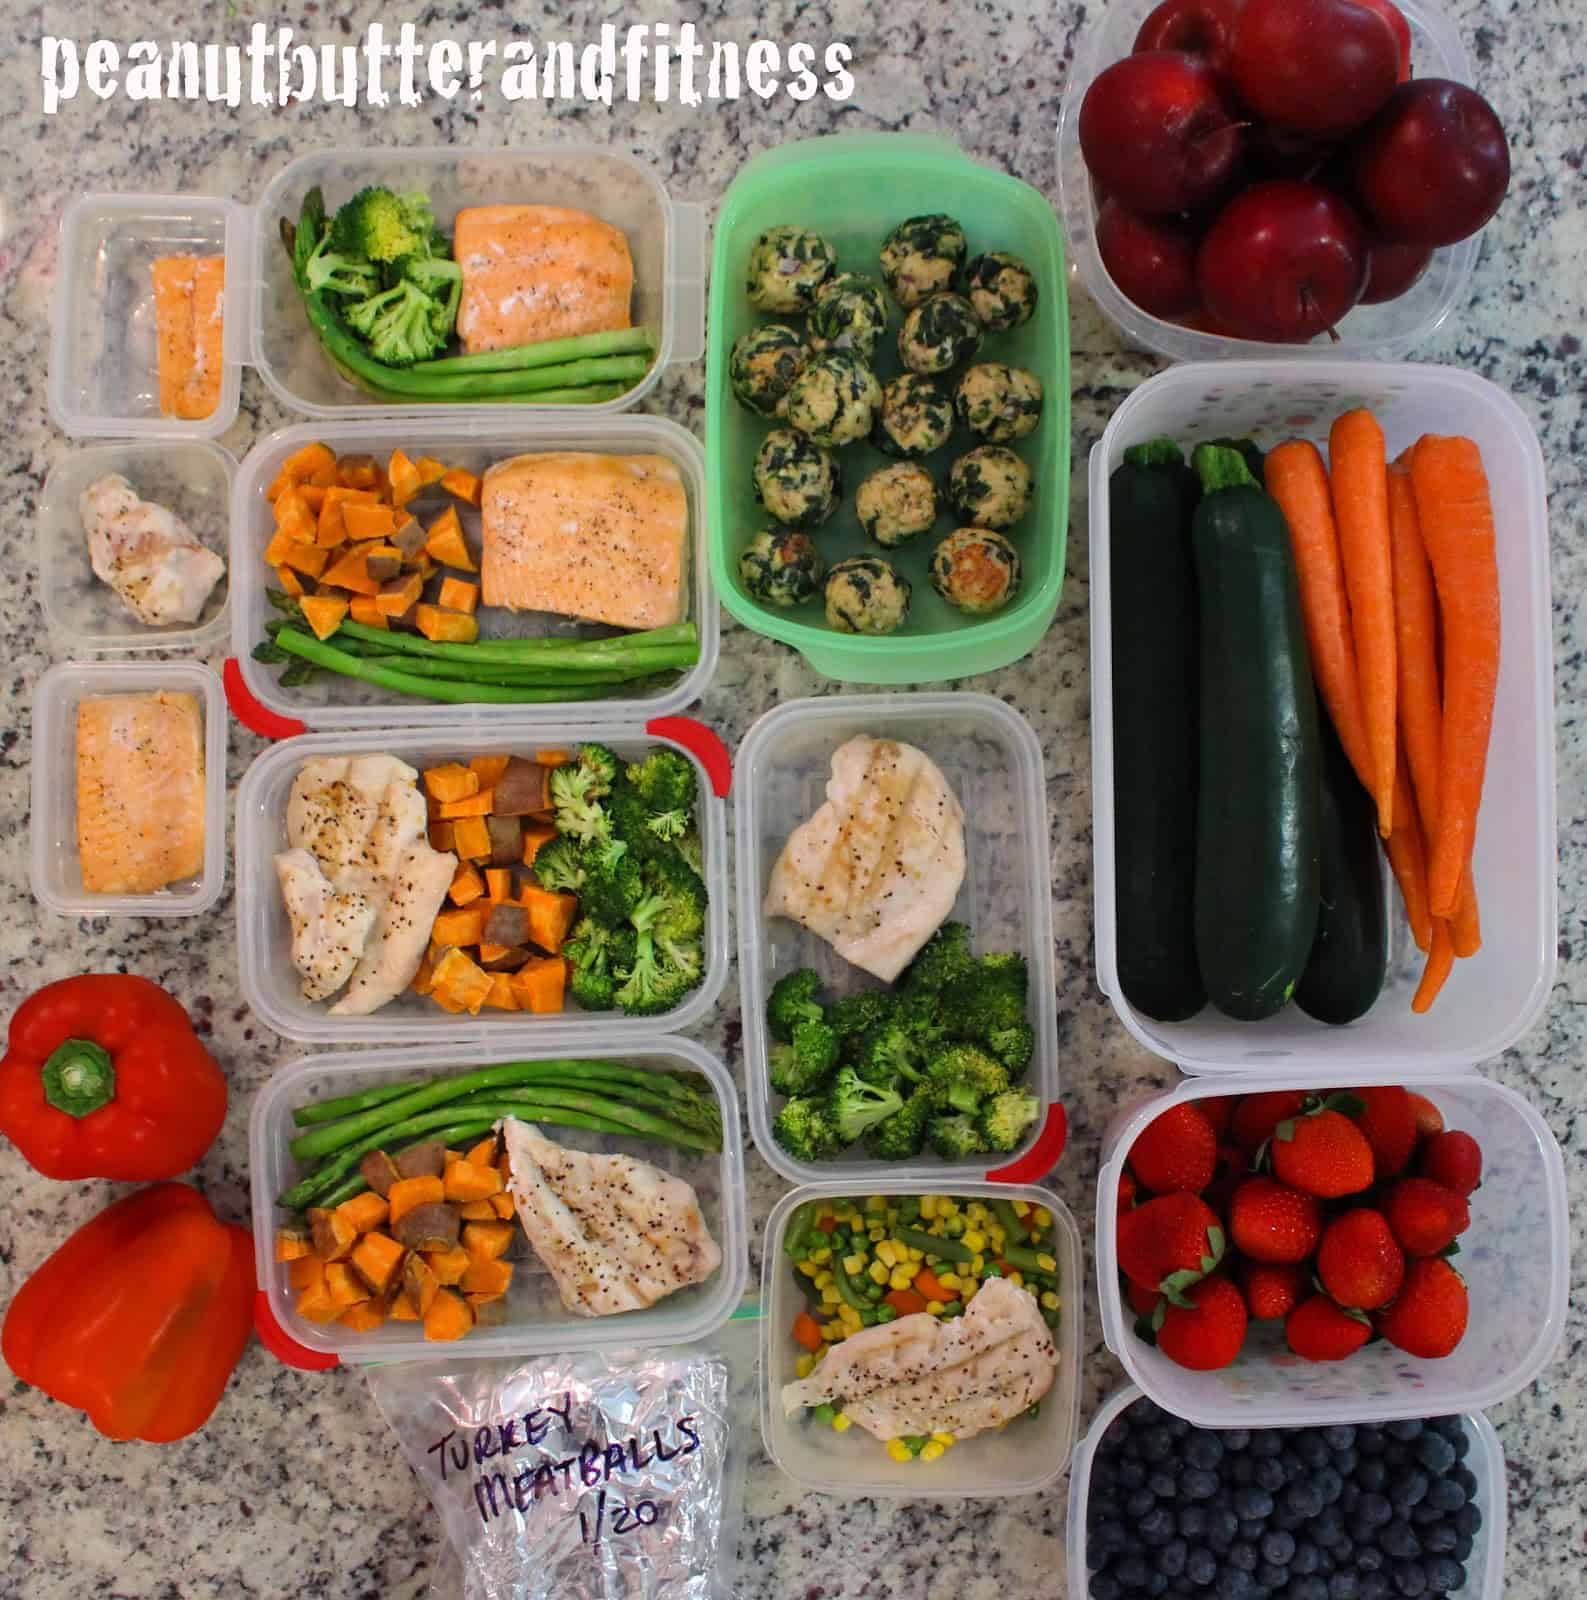 Meal Prep 101 And 1 Week Meal Prep Peanut Butter And Fitness